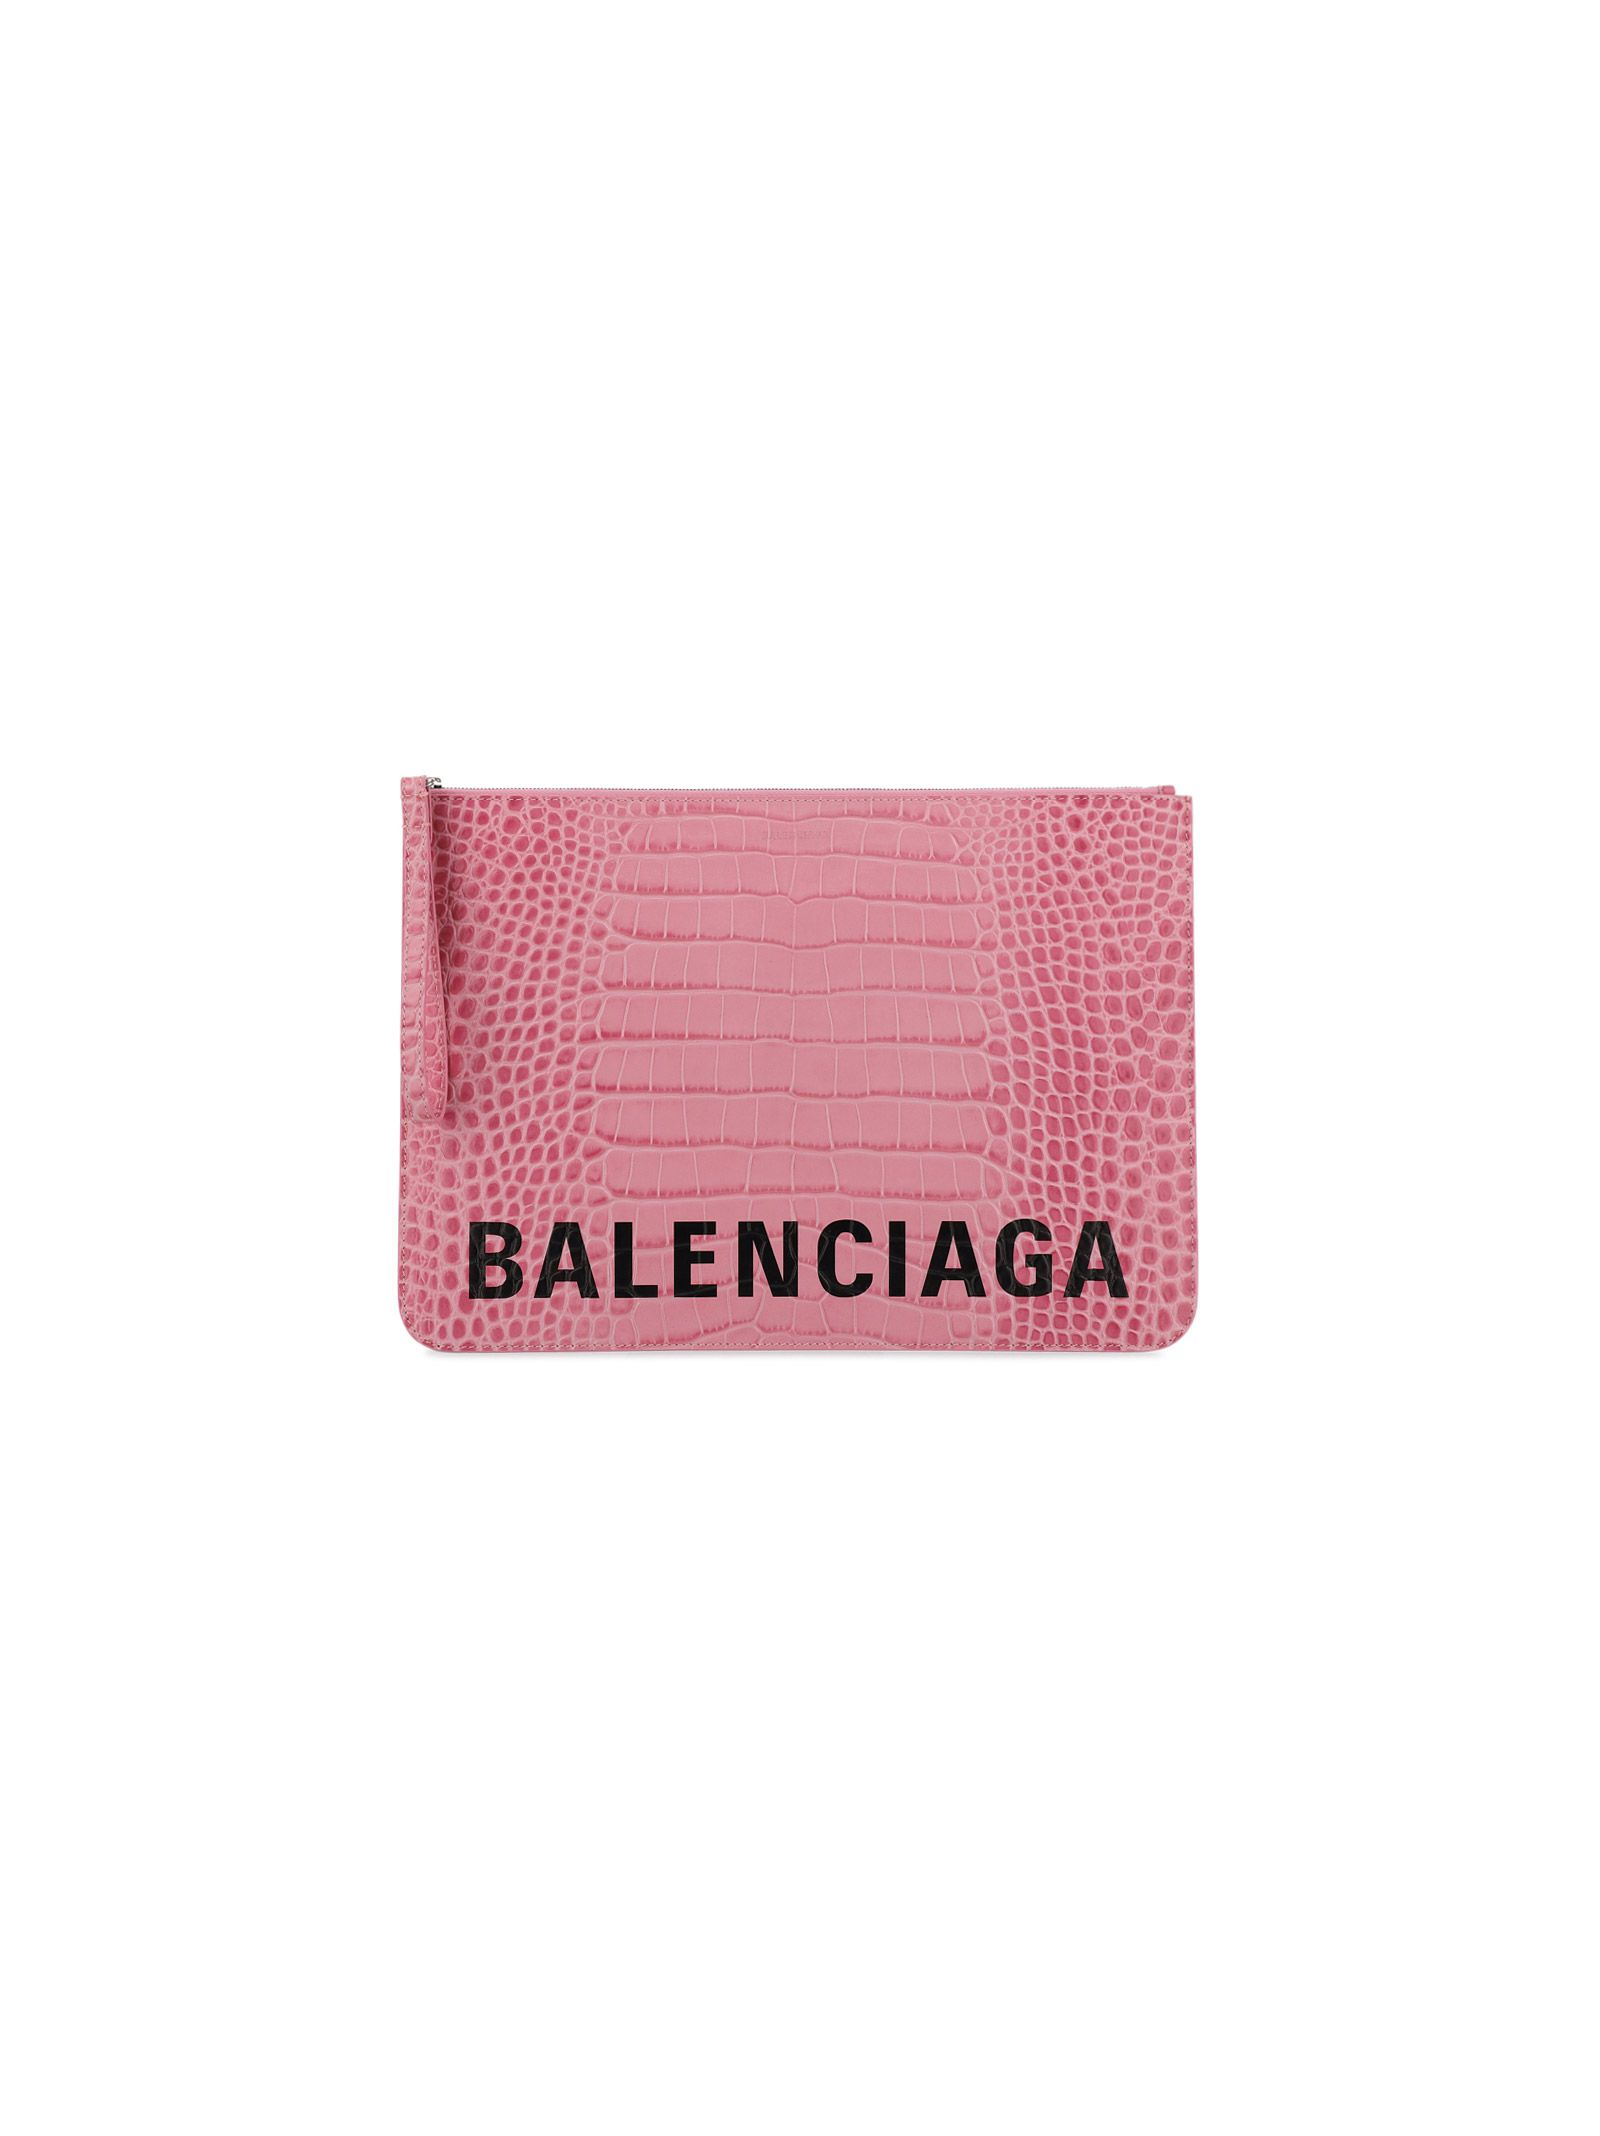 Balenciaga BALENCIAGA WOMEN'S PINK OTHER MATERIALS POUCH